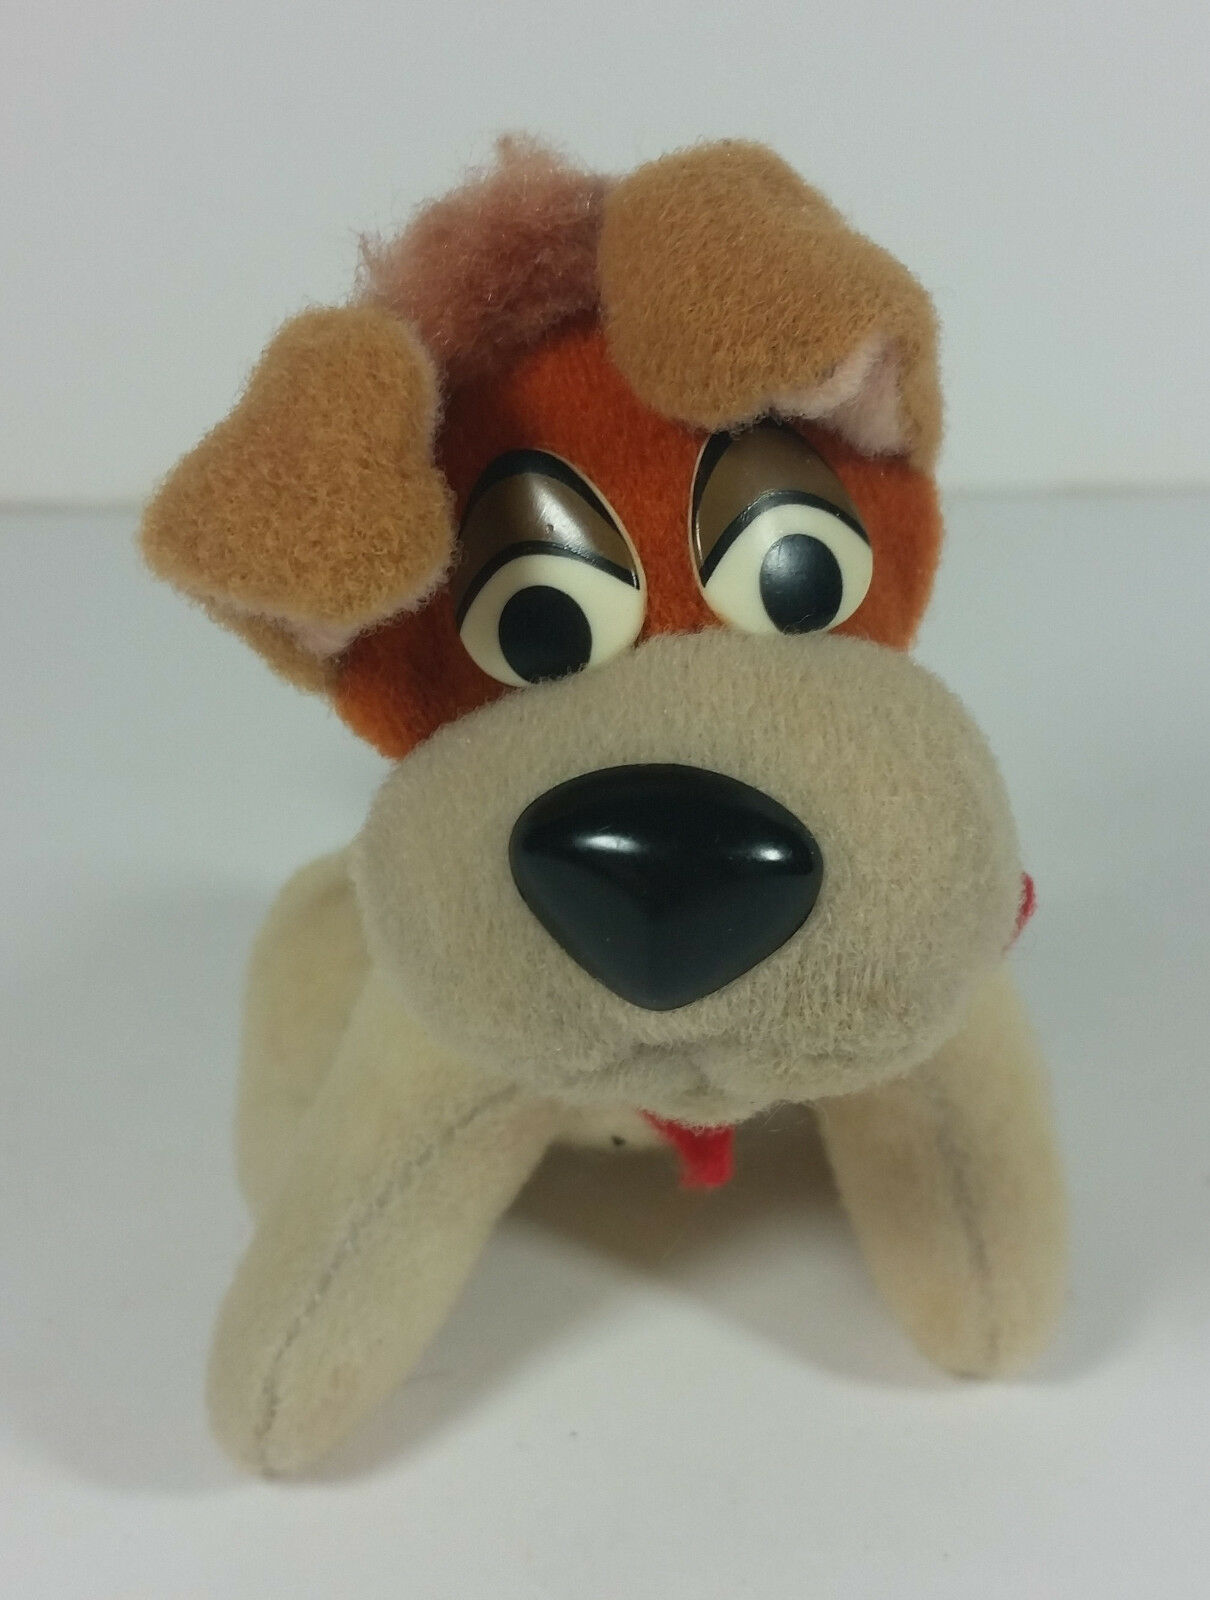 Primary image for Vintage Dodger Plush Lady and the Tramp 1988 Disney Mini 4in Stuffed Animal Dog